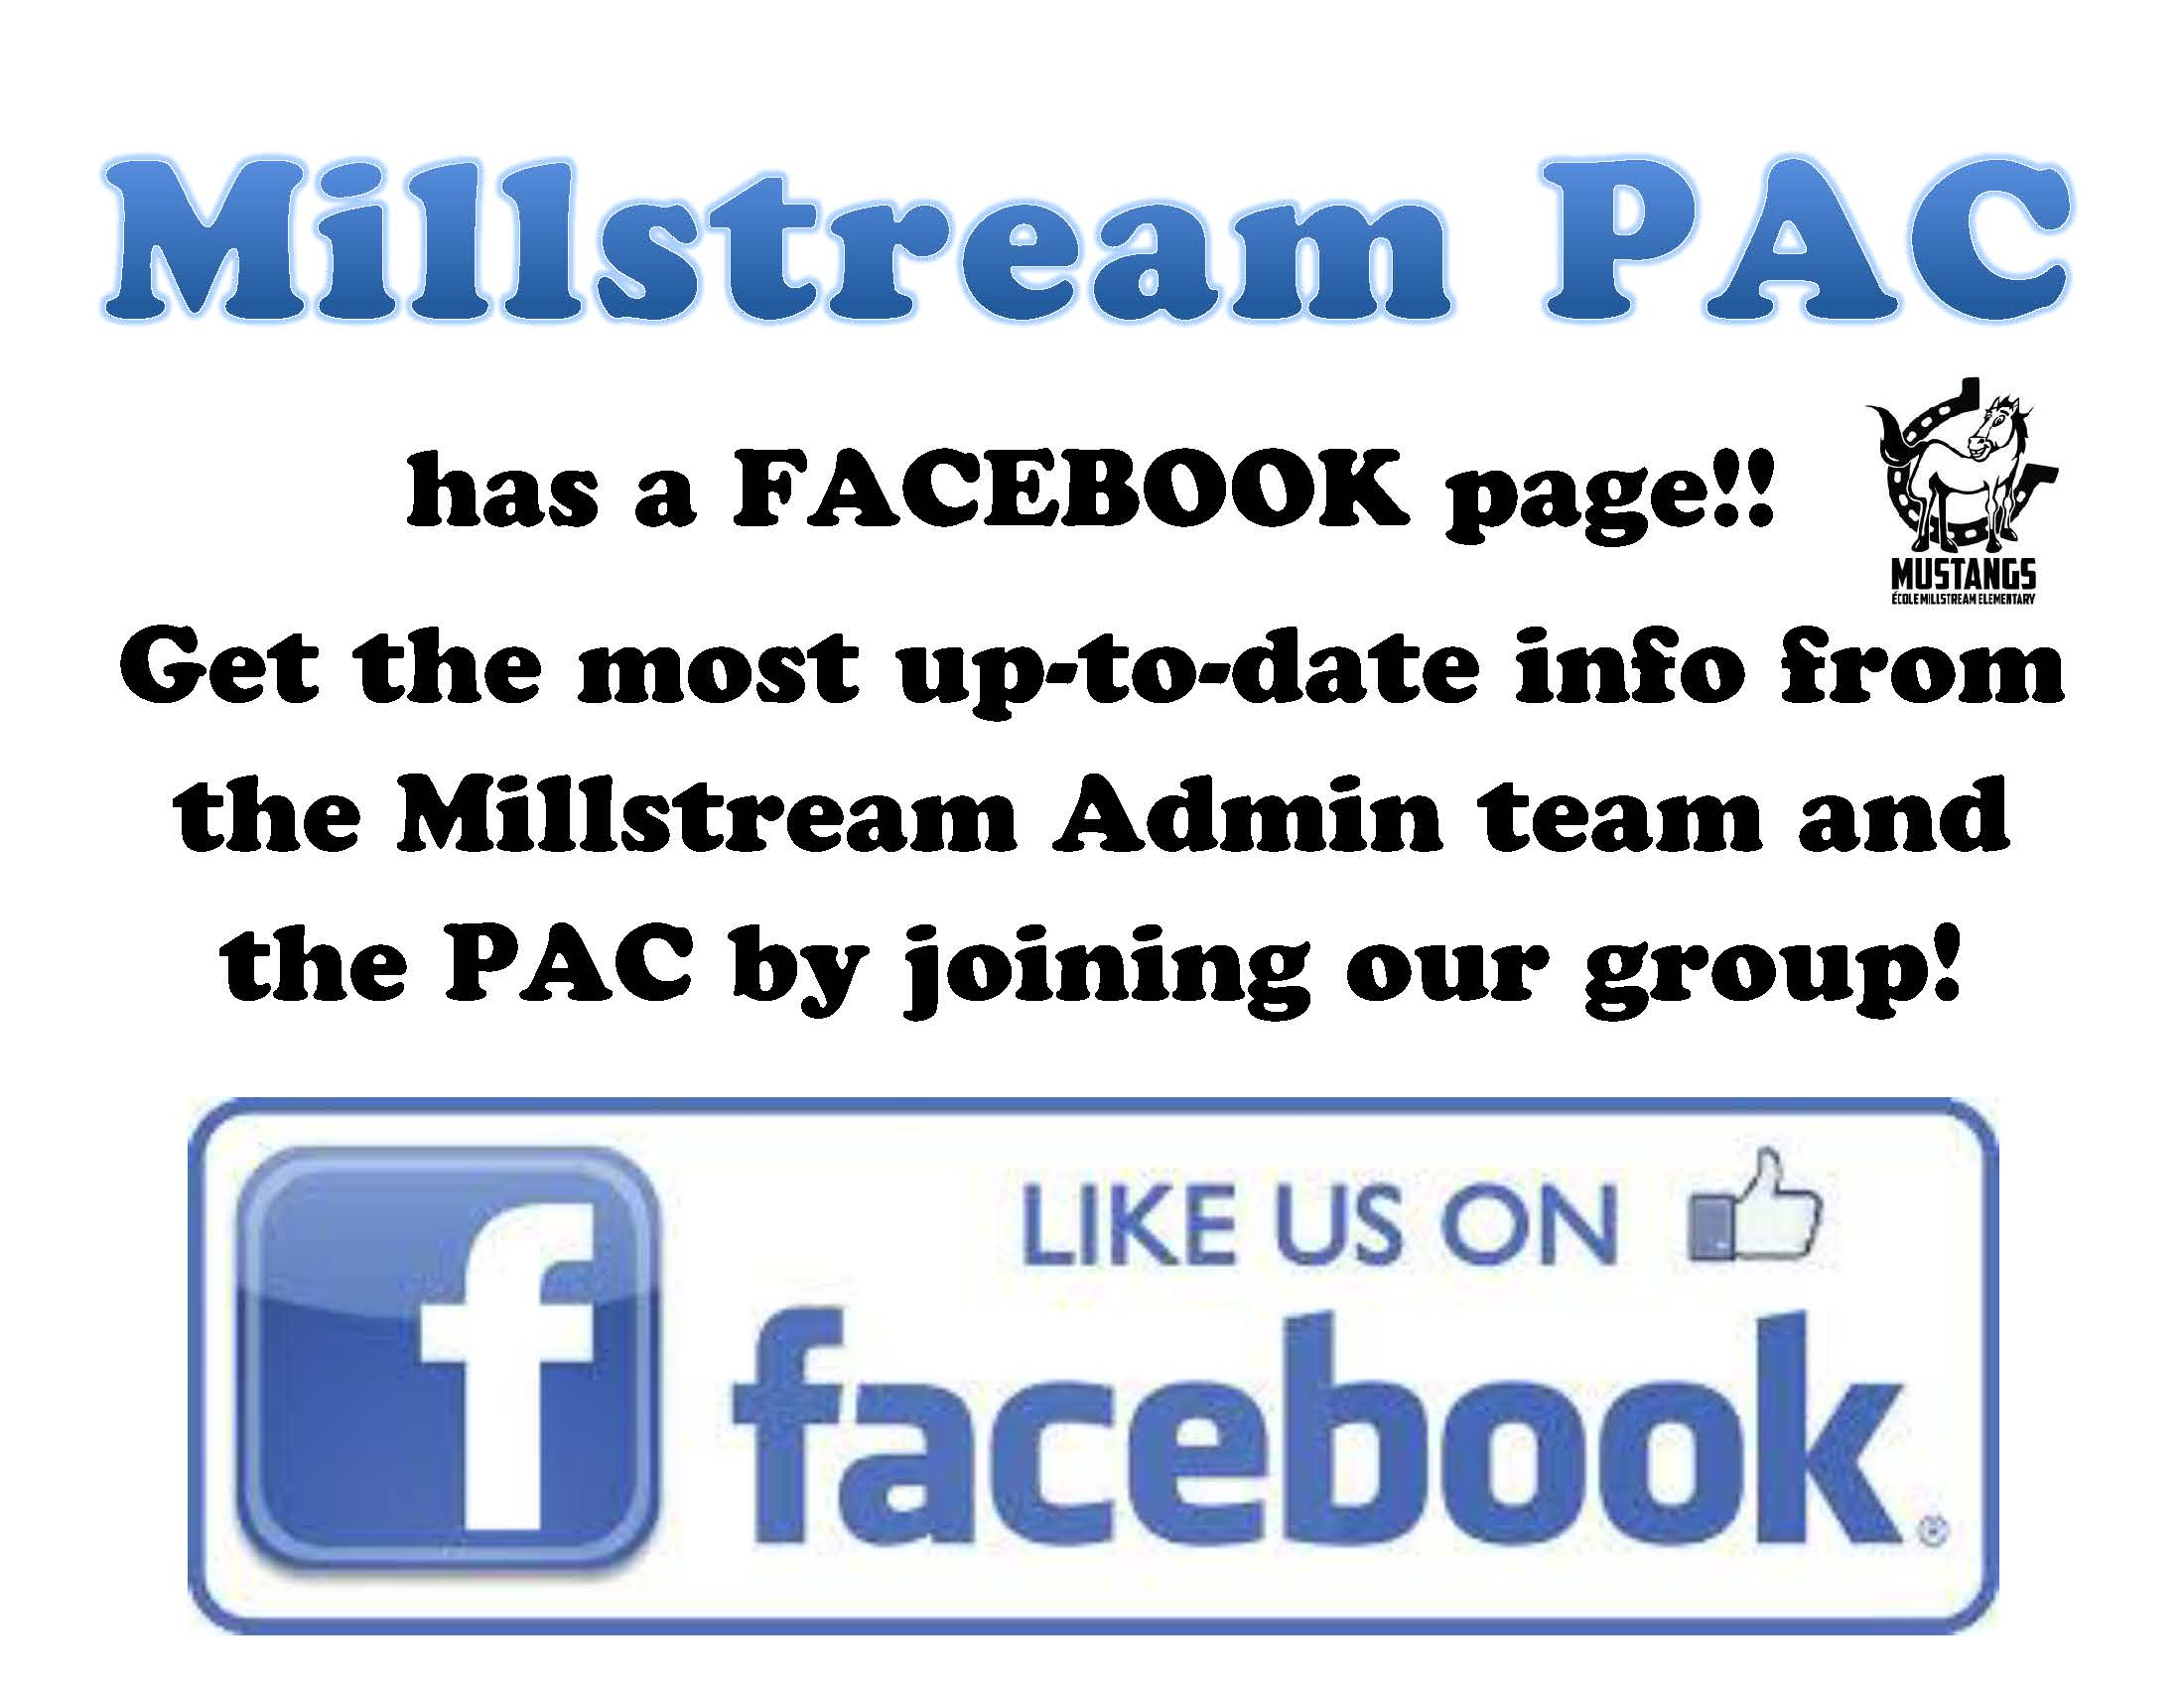 millstream-pac-has-a-facebook-page